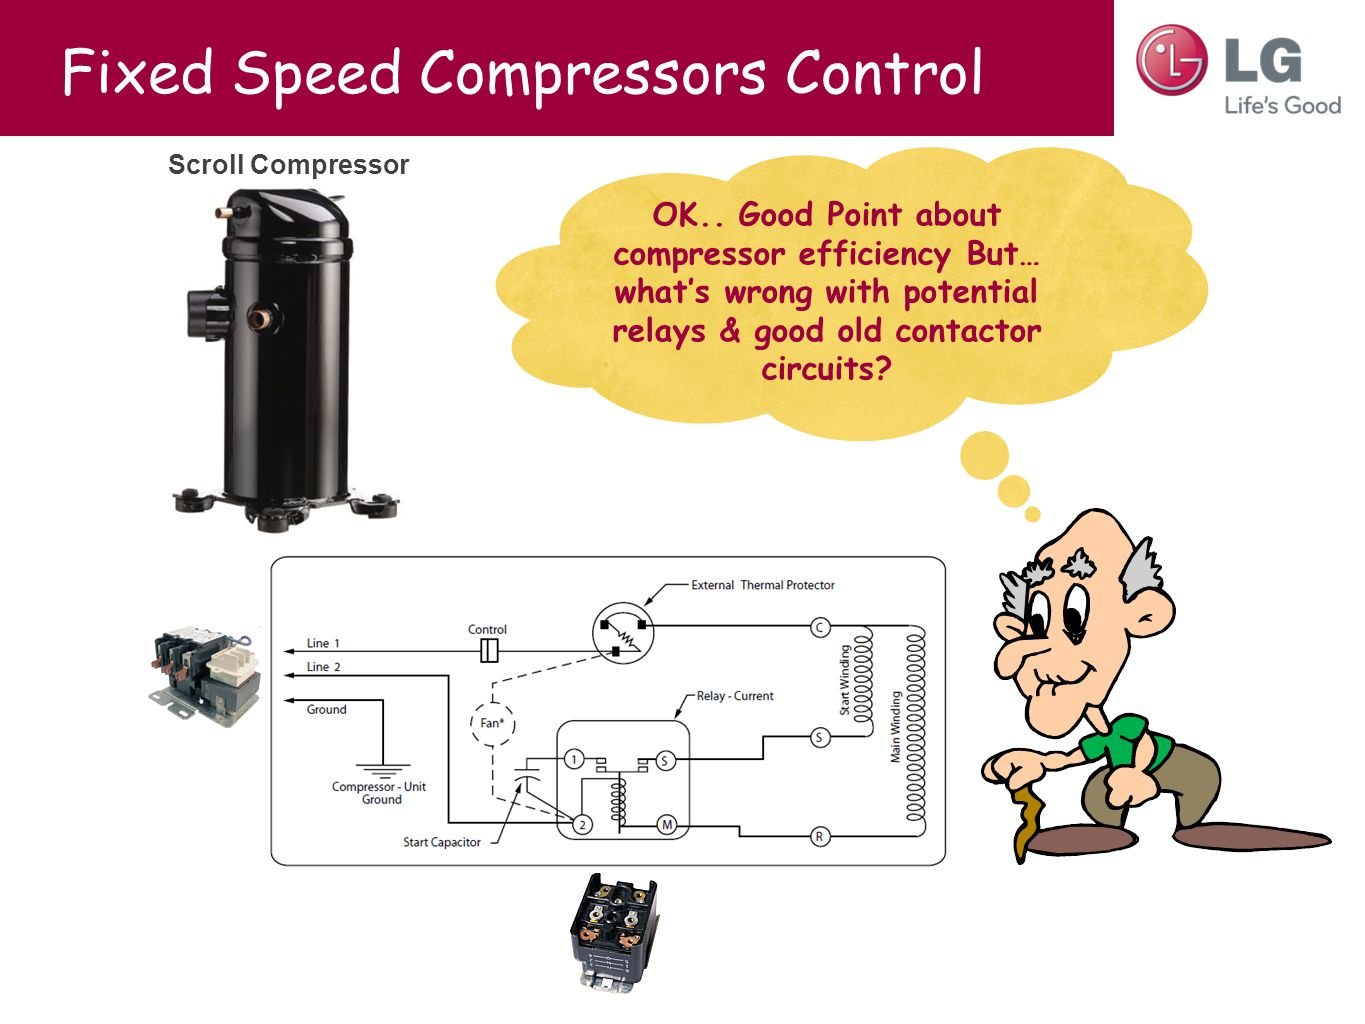 Fixed Speed Compressors Control Scroll Compressor OK.. Good Point about compressor efficiency But… what's wrong with potential relays & good old conta